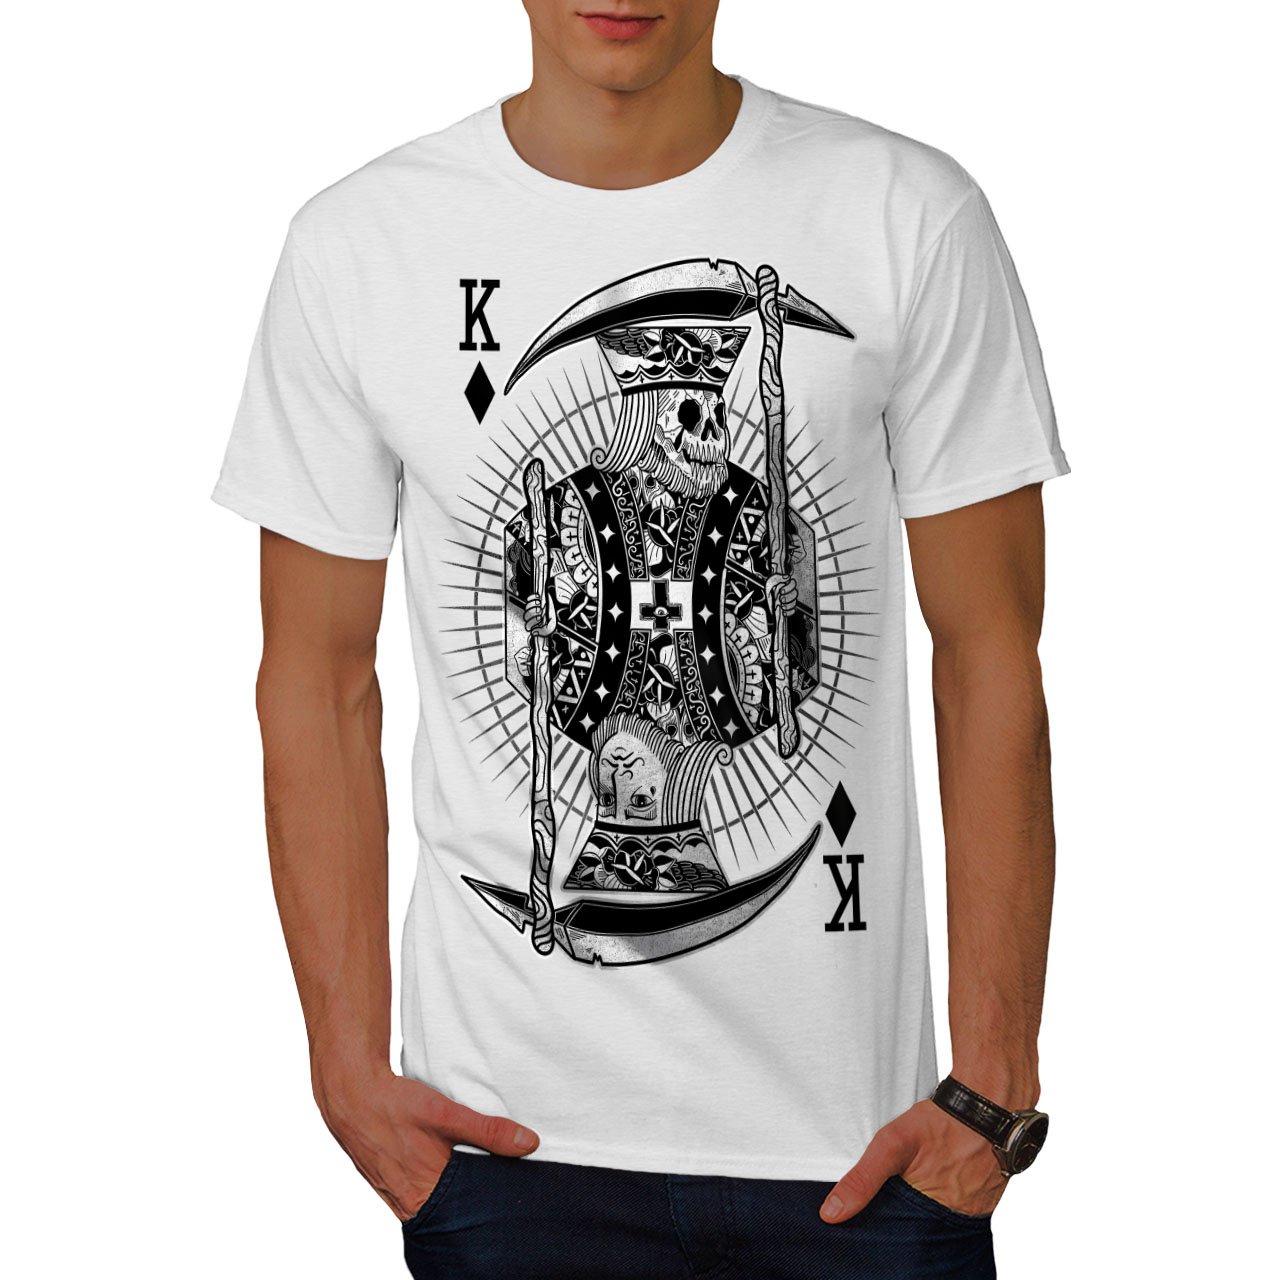 Wellcoda-Poker-Horror-King-Skull-Mens-T-shirt-Graphic-Design-Printed-Tee thumbnail 9